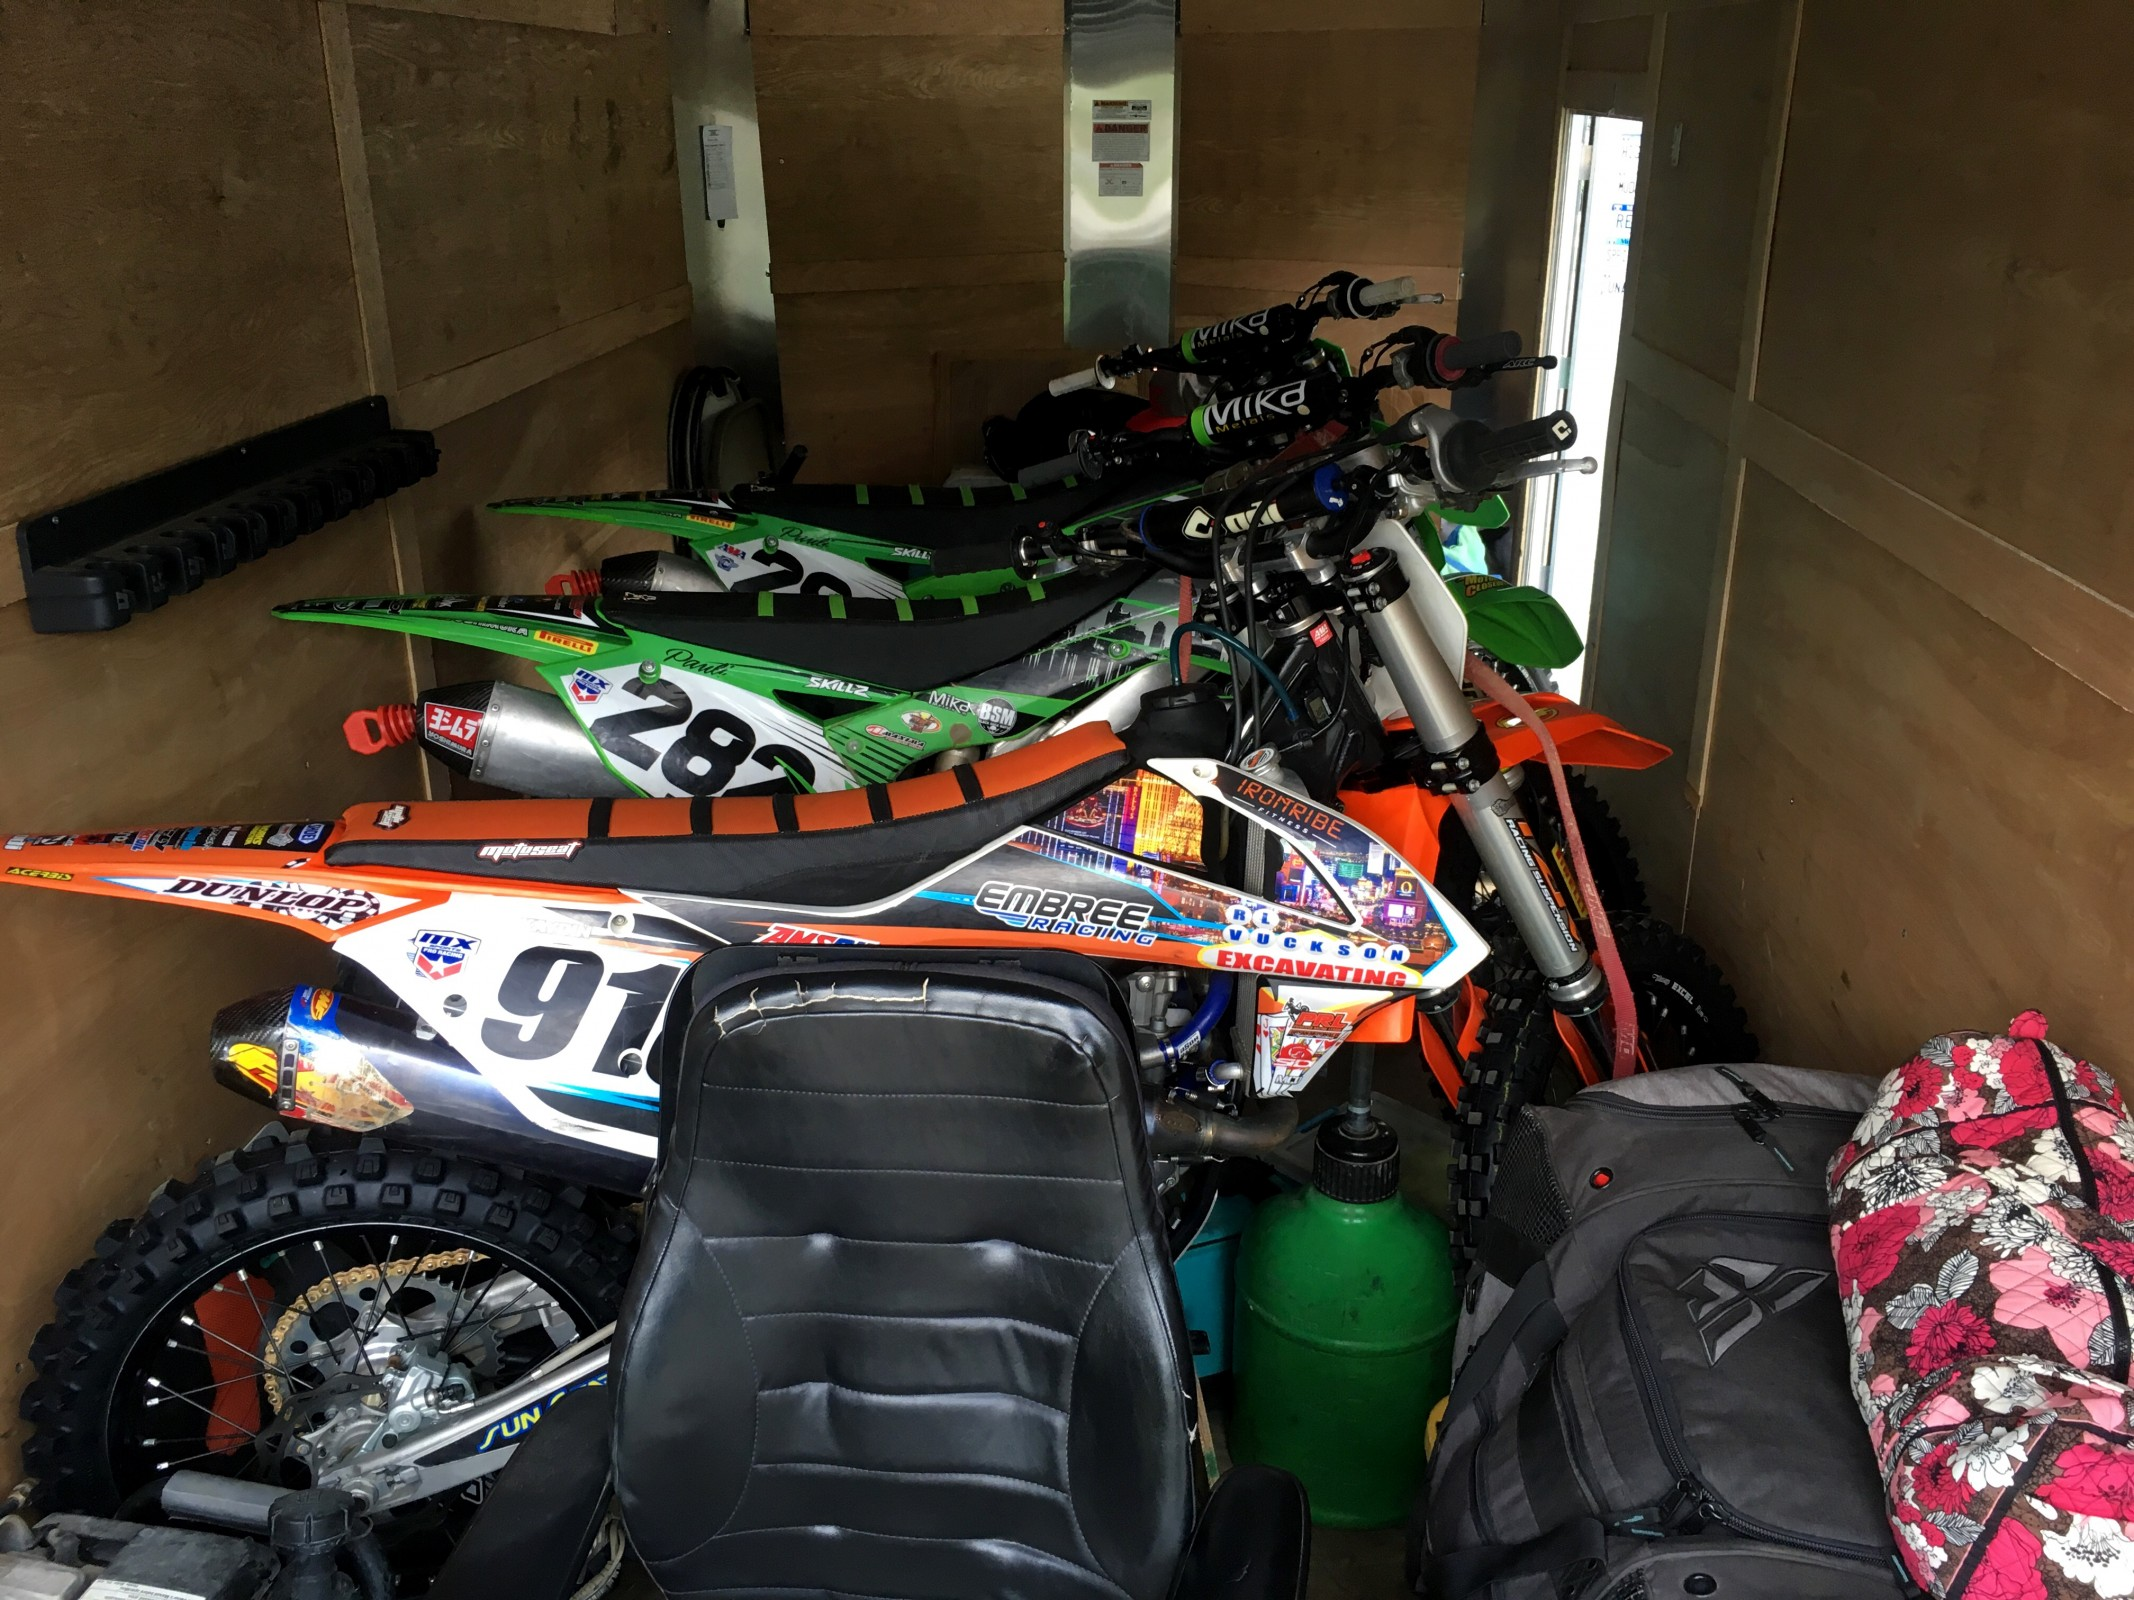 A typical privateer setup.